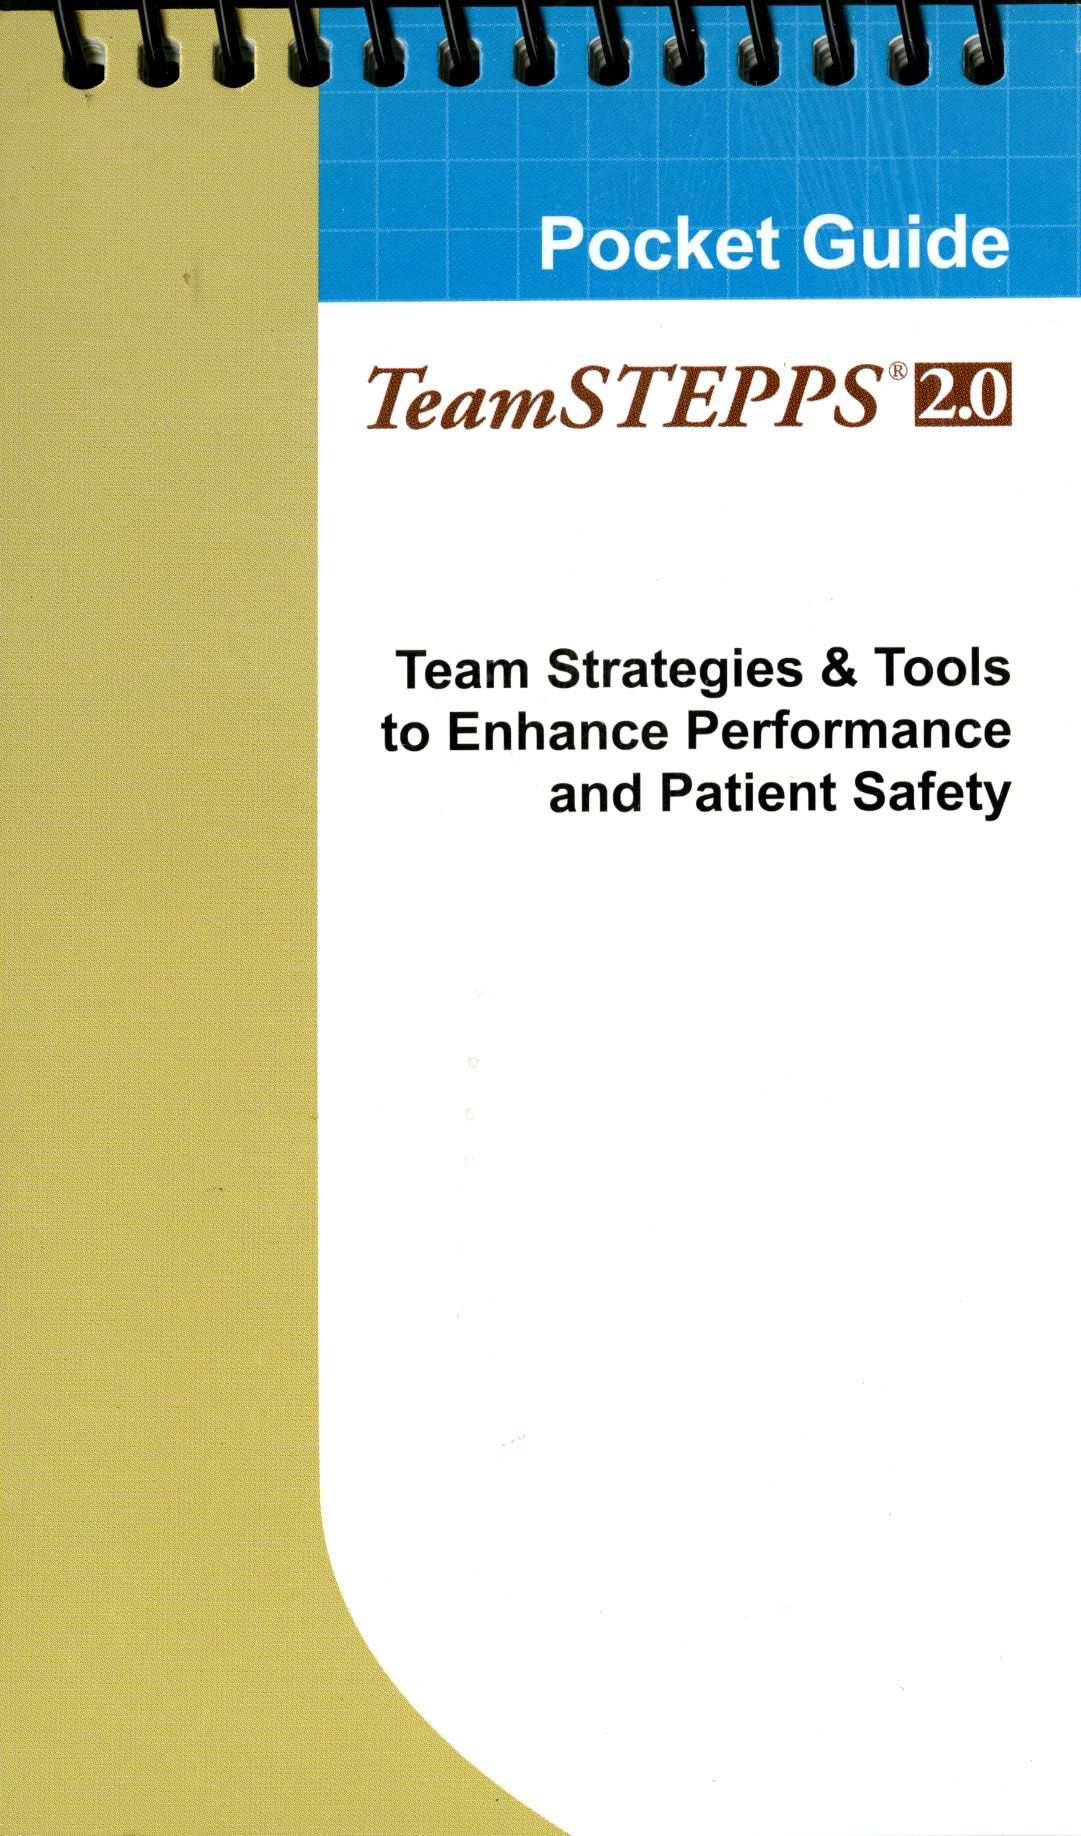 Teamstepps 20 pocket guide team strategies tools to enhance teamstepps 20 pocket guide team strategies tools to enhance performance and patient safety package of 10 us government bookstore fandeluxe Image collections